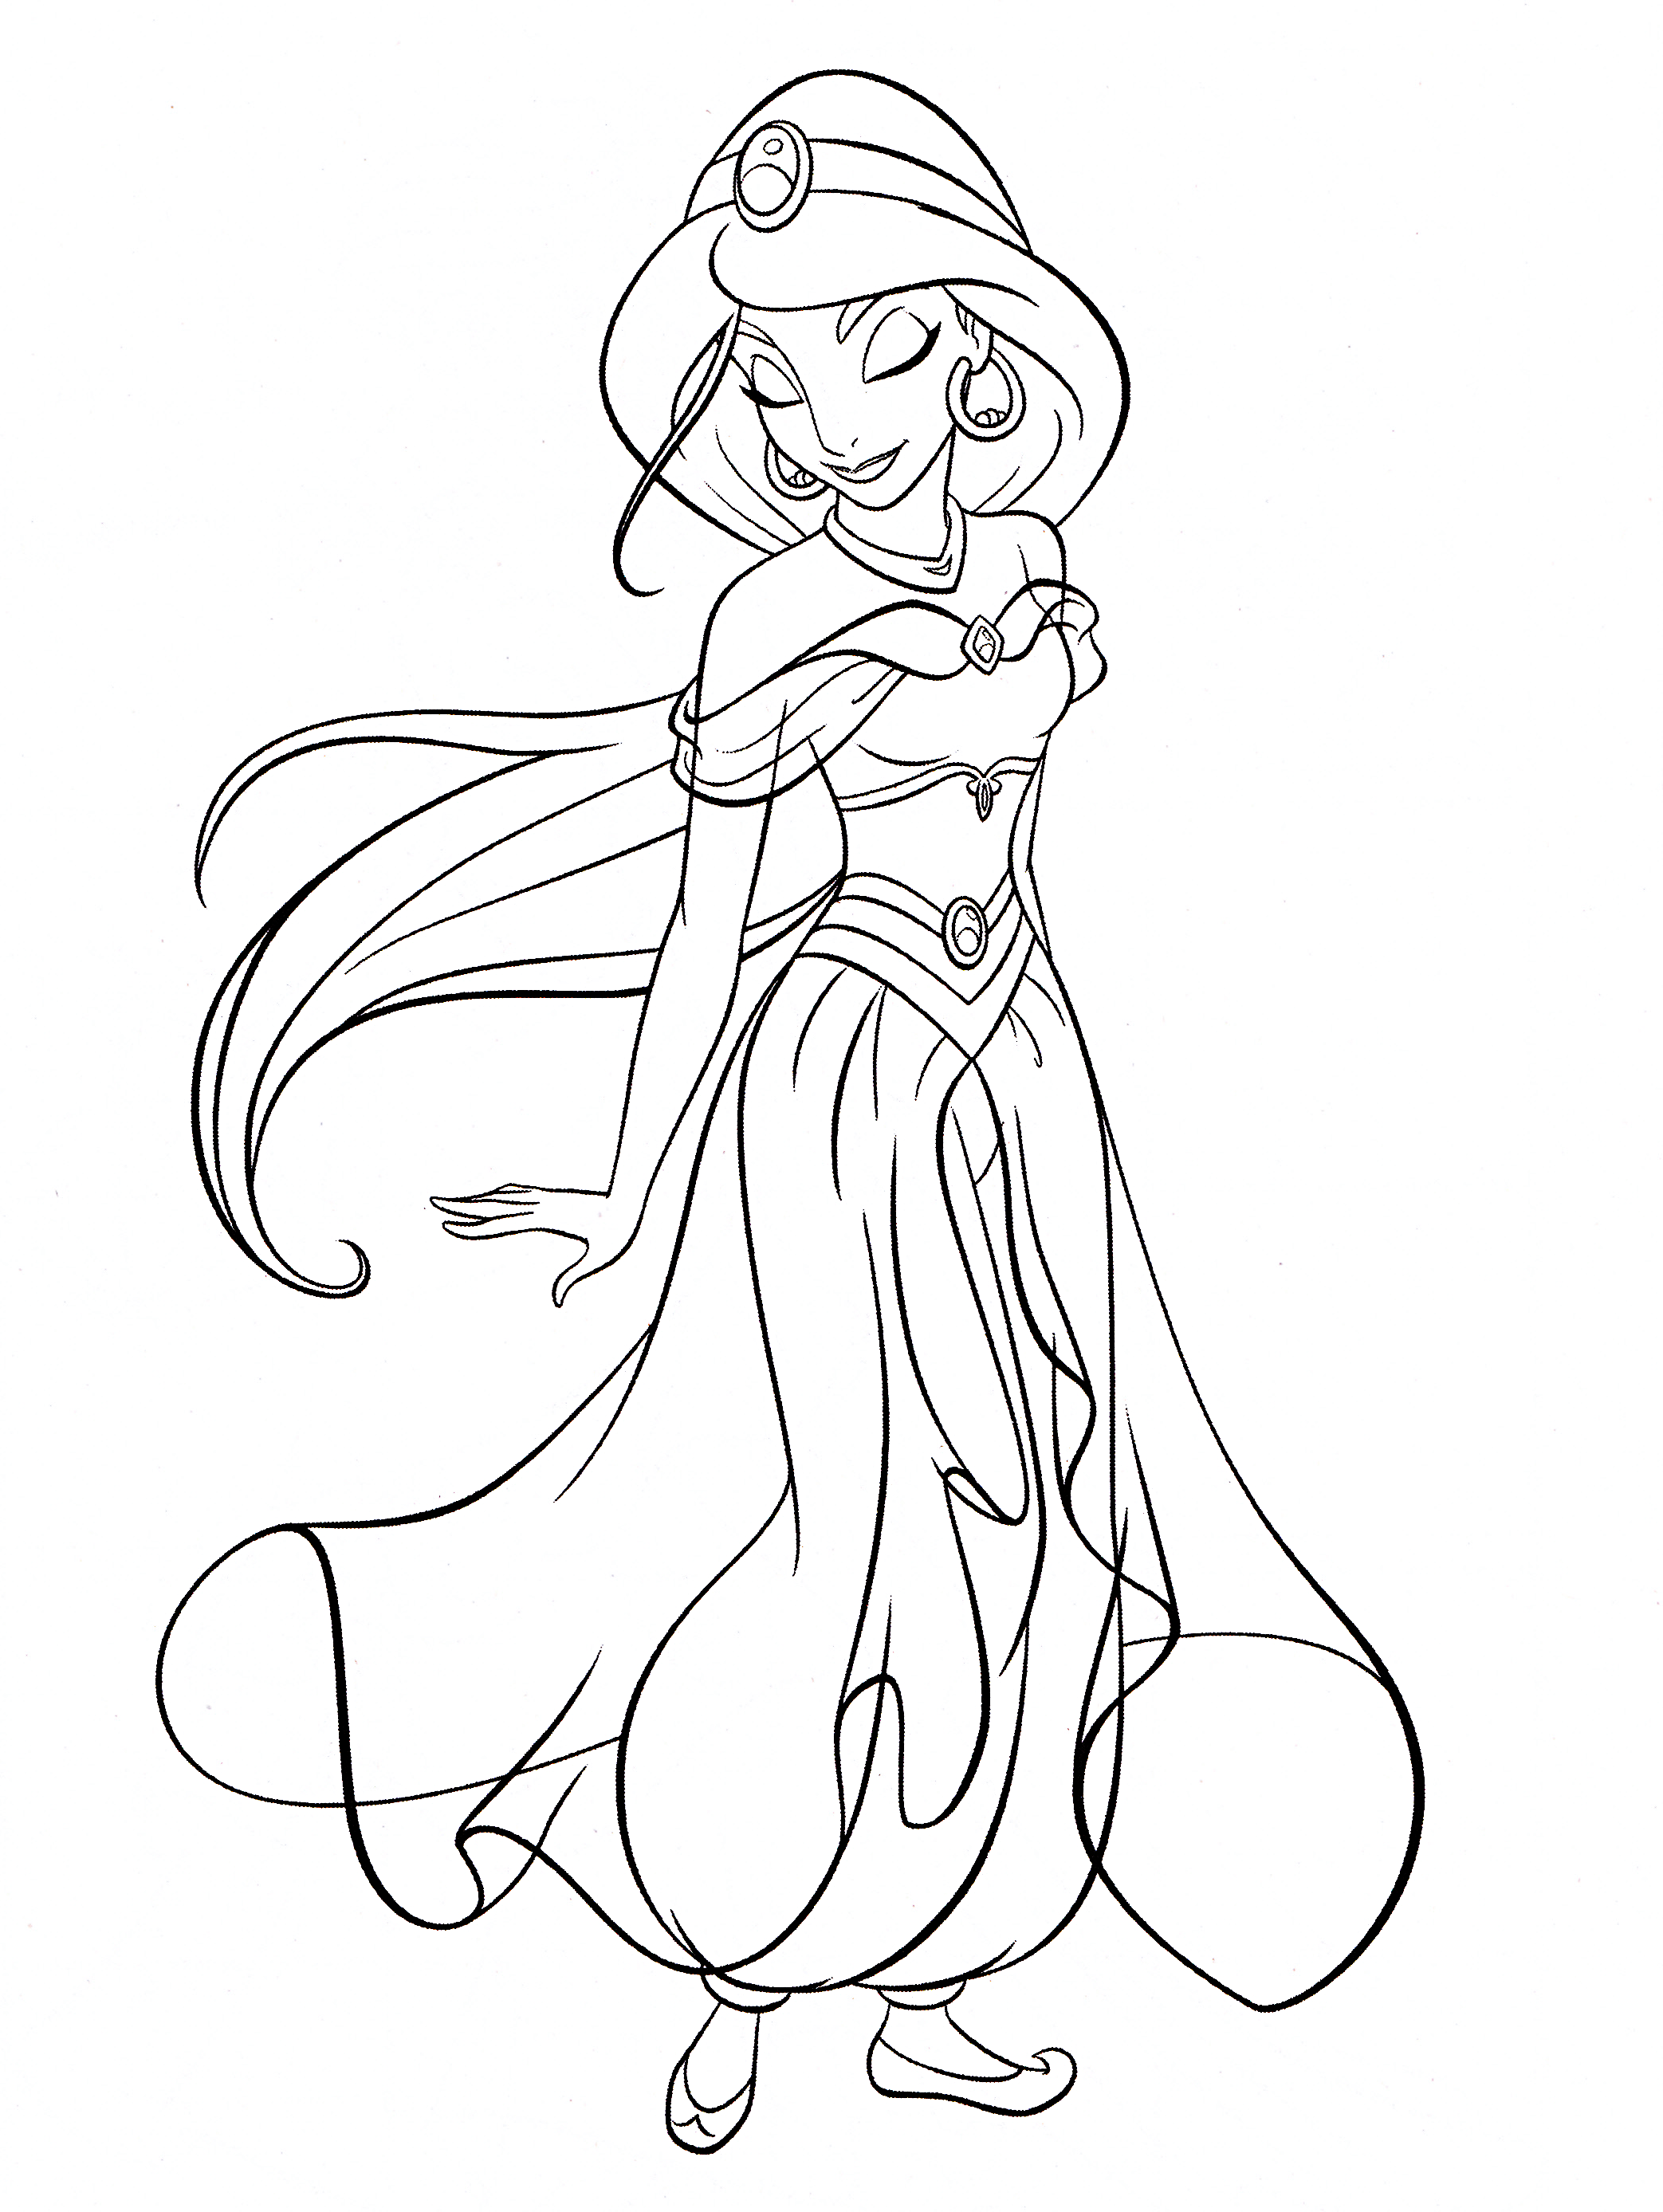 Walt Disney Coloring Pages - Princess جیسمین, یاسمین